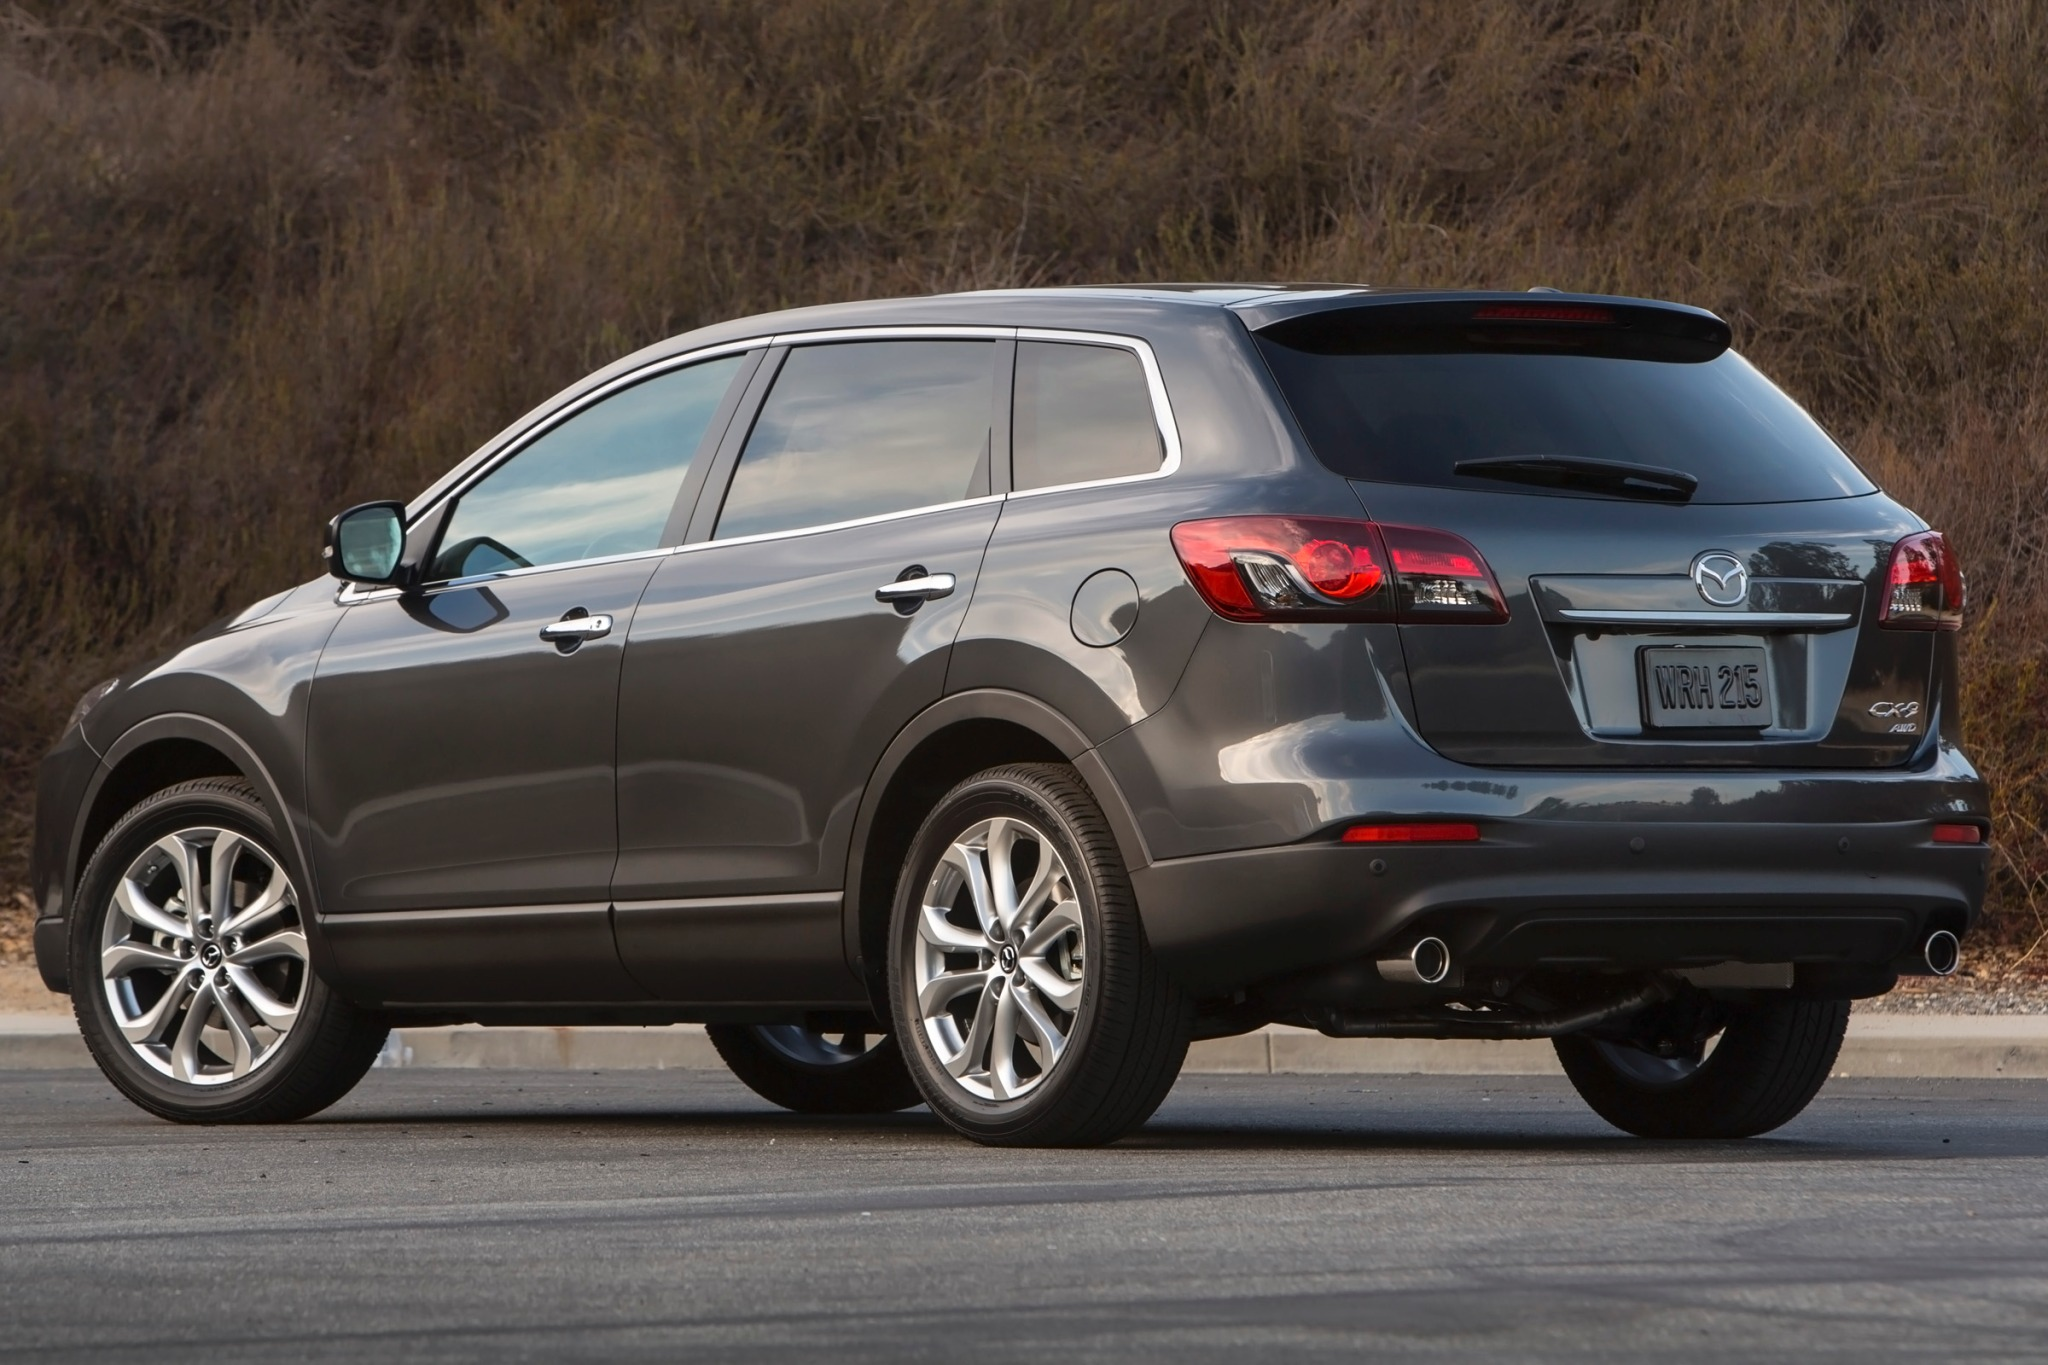 2013 Mazda Cx 9 Reviews Ratings Prices Consumer Reports Autos Post